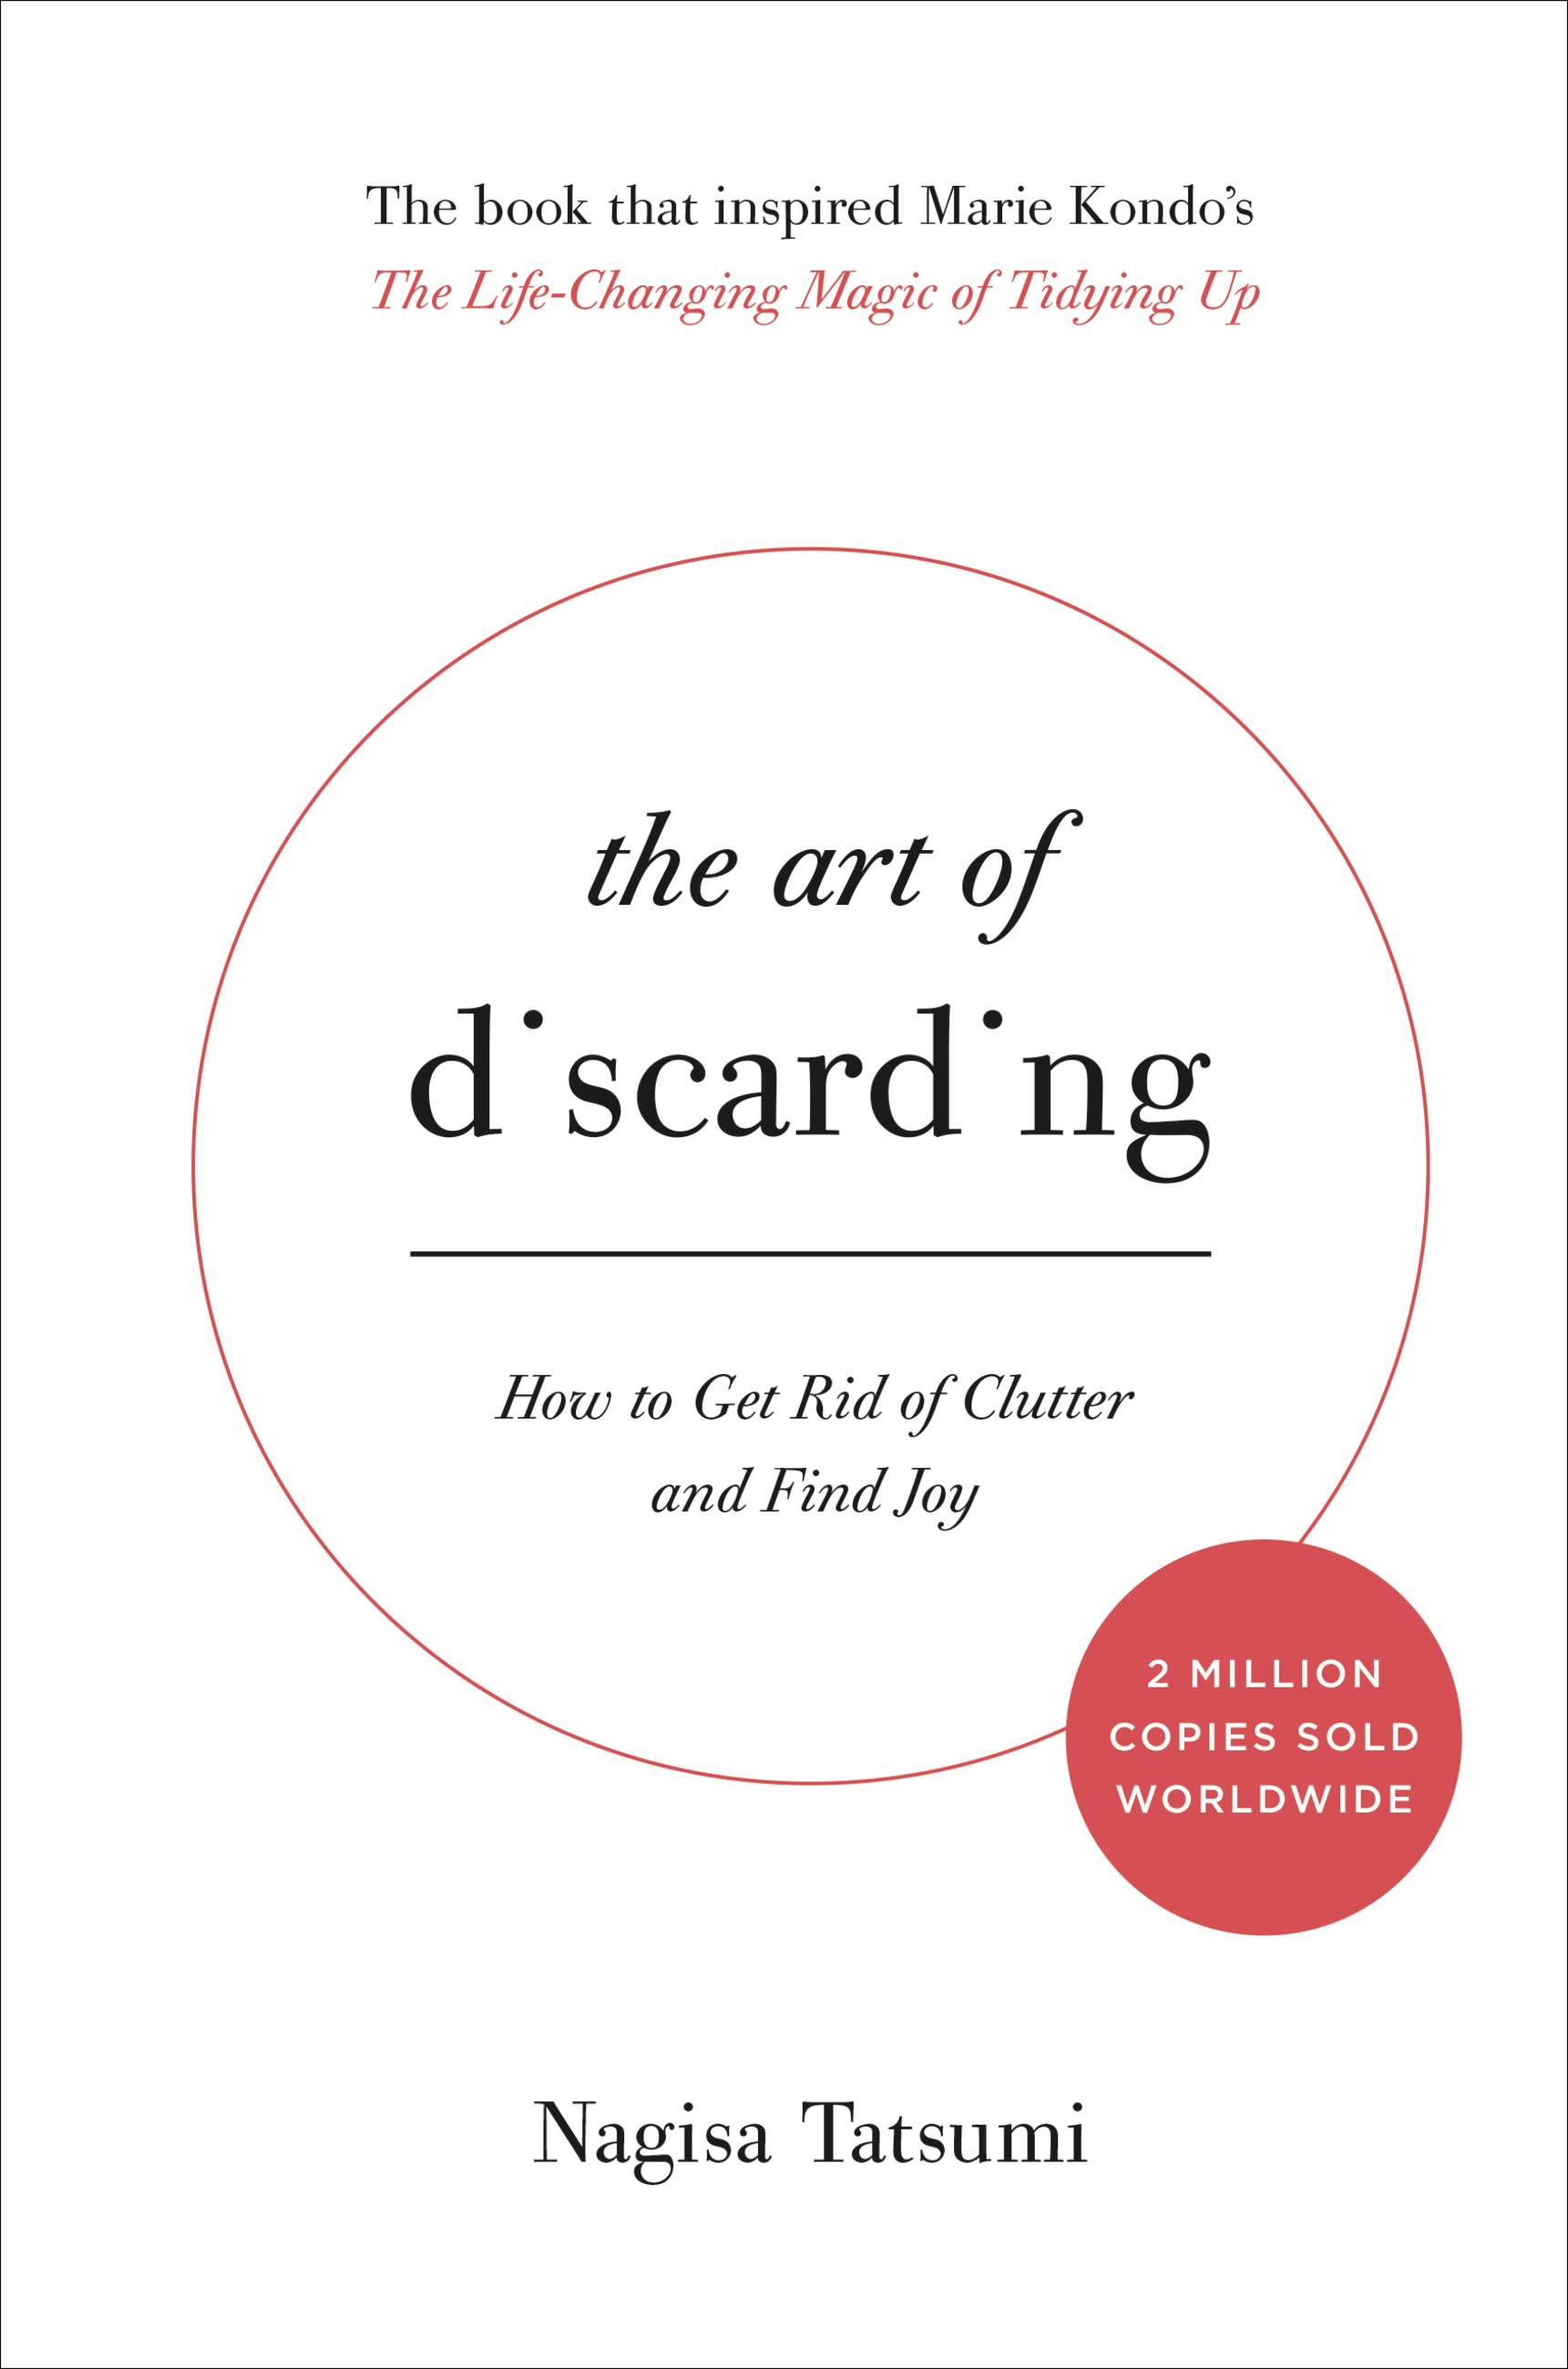 The Art of Discarding How to Get Rid of Clutter and Find Joy